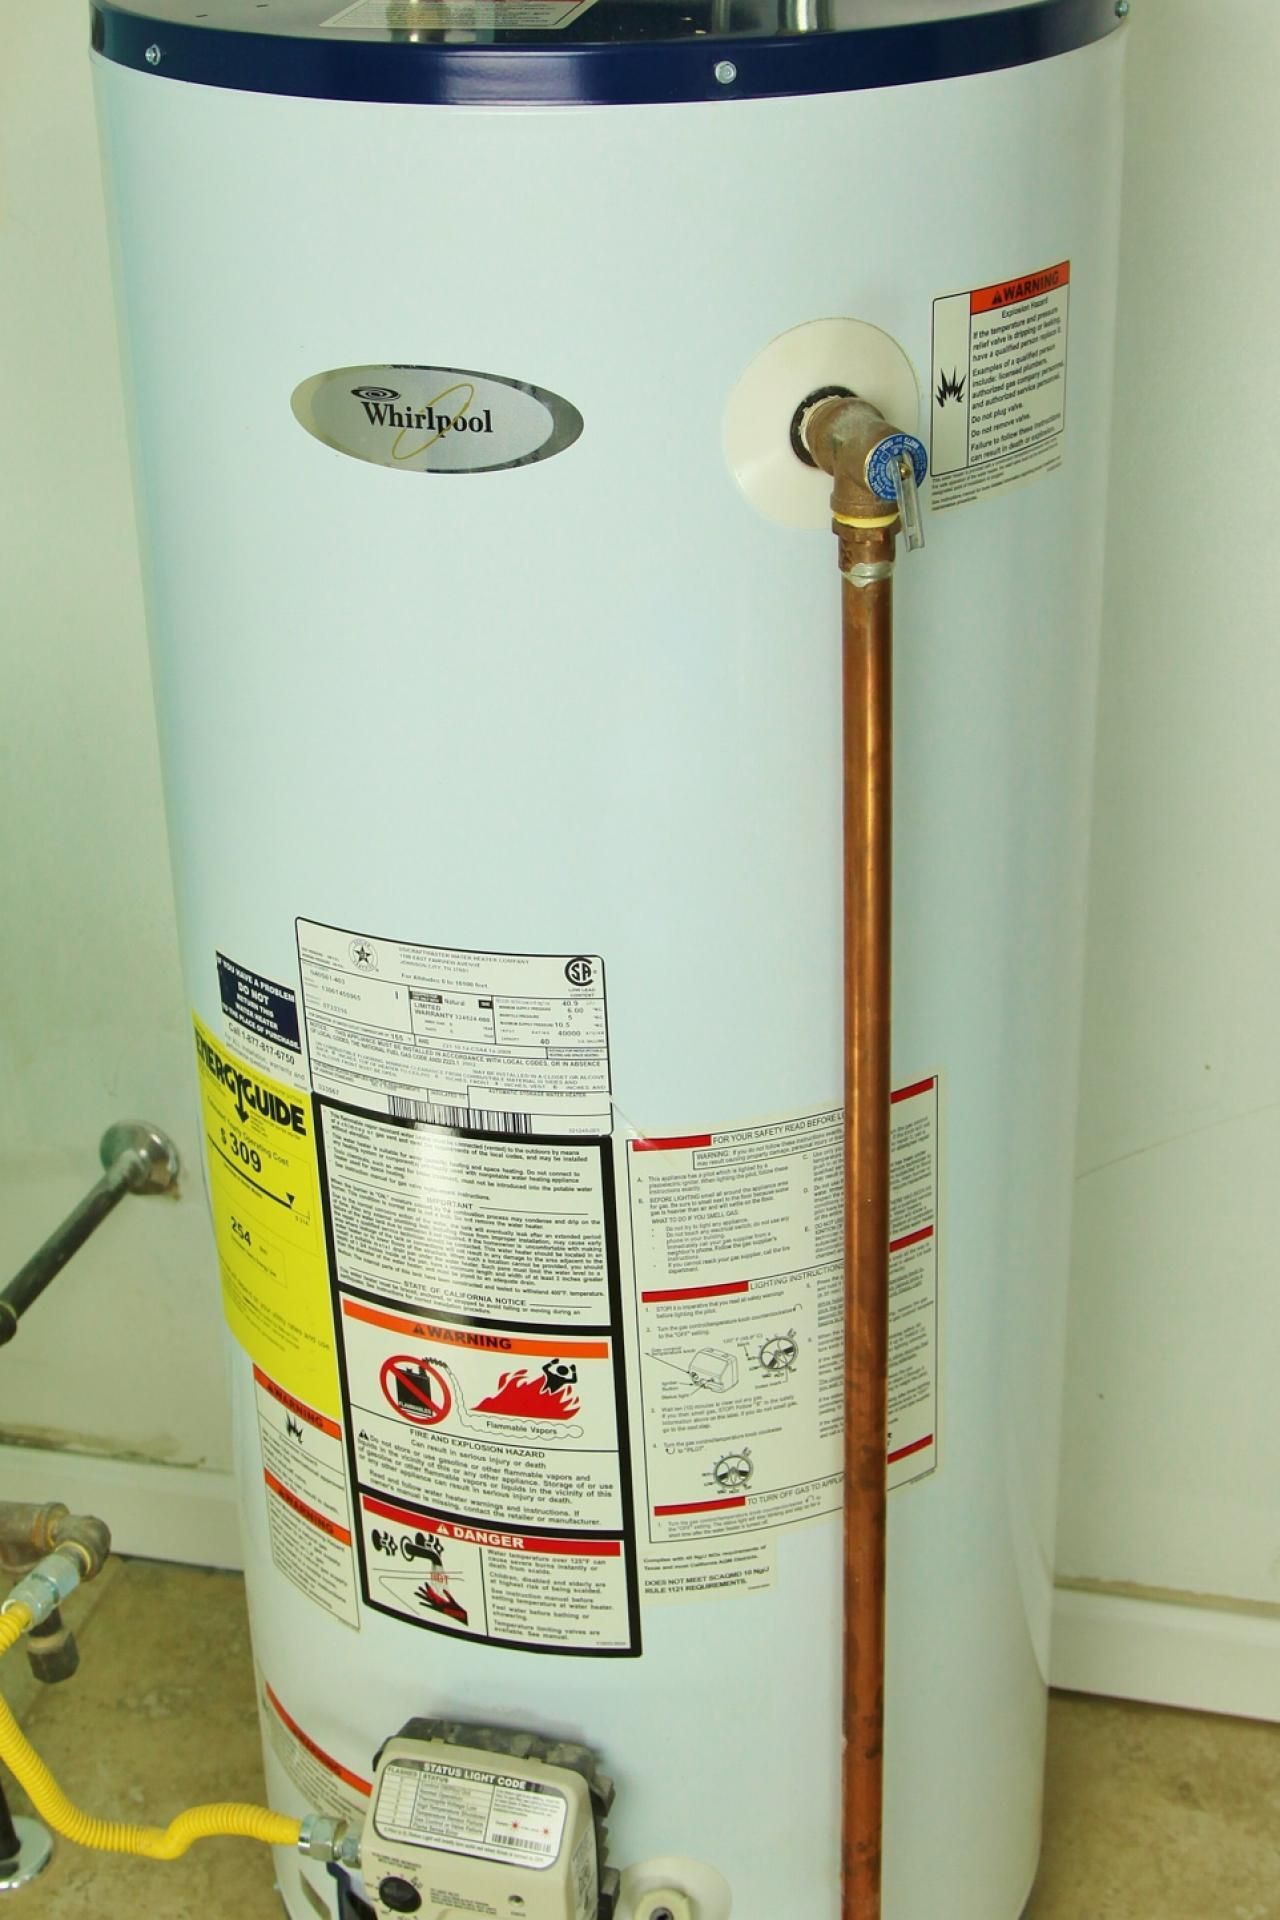 DIY Network has instructions on how to drain your hot-water heater to keep it well-maintained and working properly.